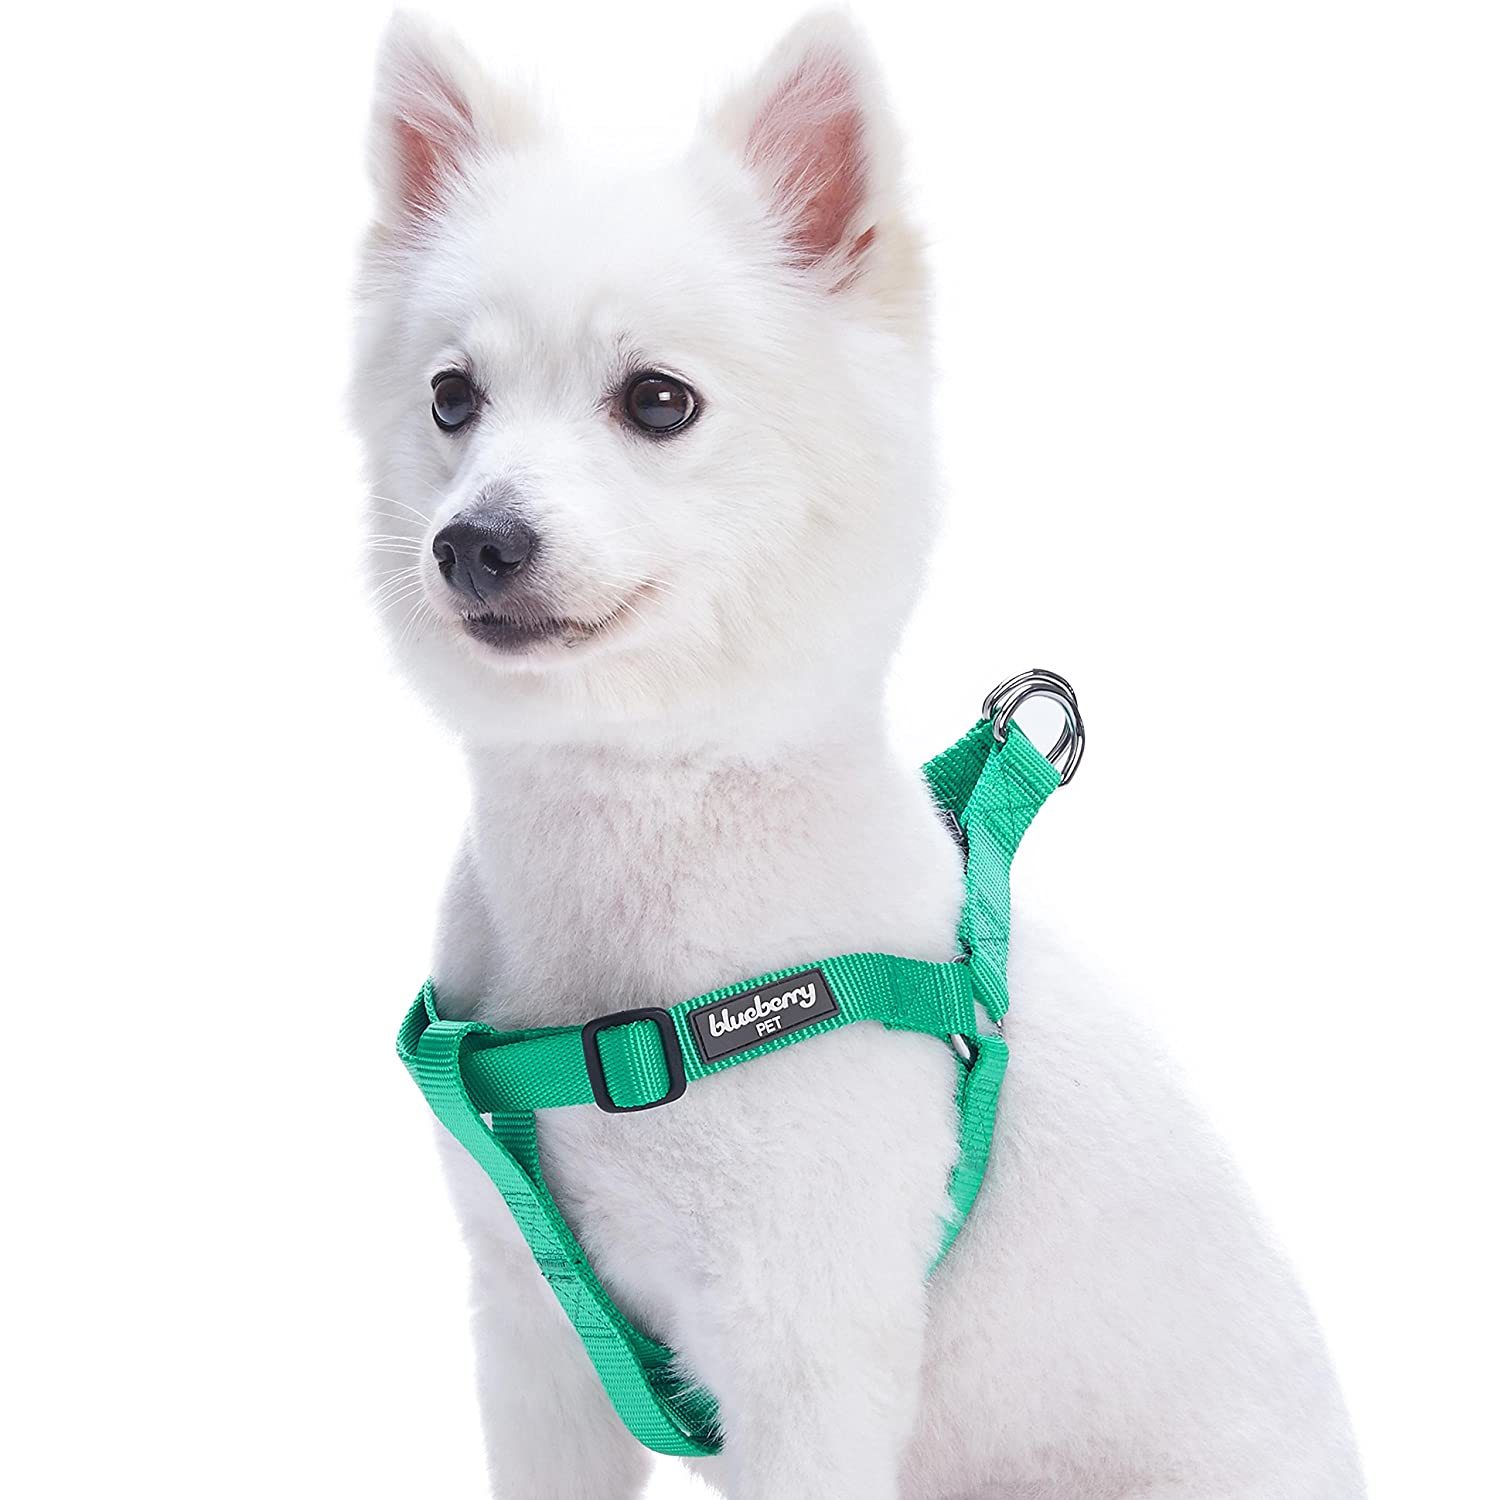 Blueberry Pet Step-in Classic Dog Harness, Chest Girth 51cm-66cm, Very Berry, Medium, Adjustable Harnesses for Dogs B01NAI7JKL エメラルド (67-98cm) 胴回り (67-98cm) 胴回り|エメラルド